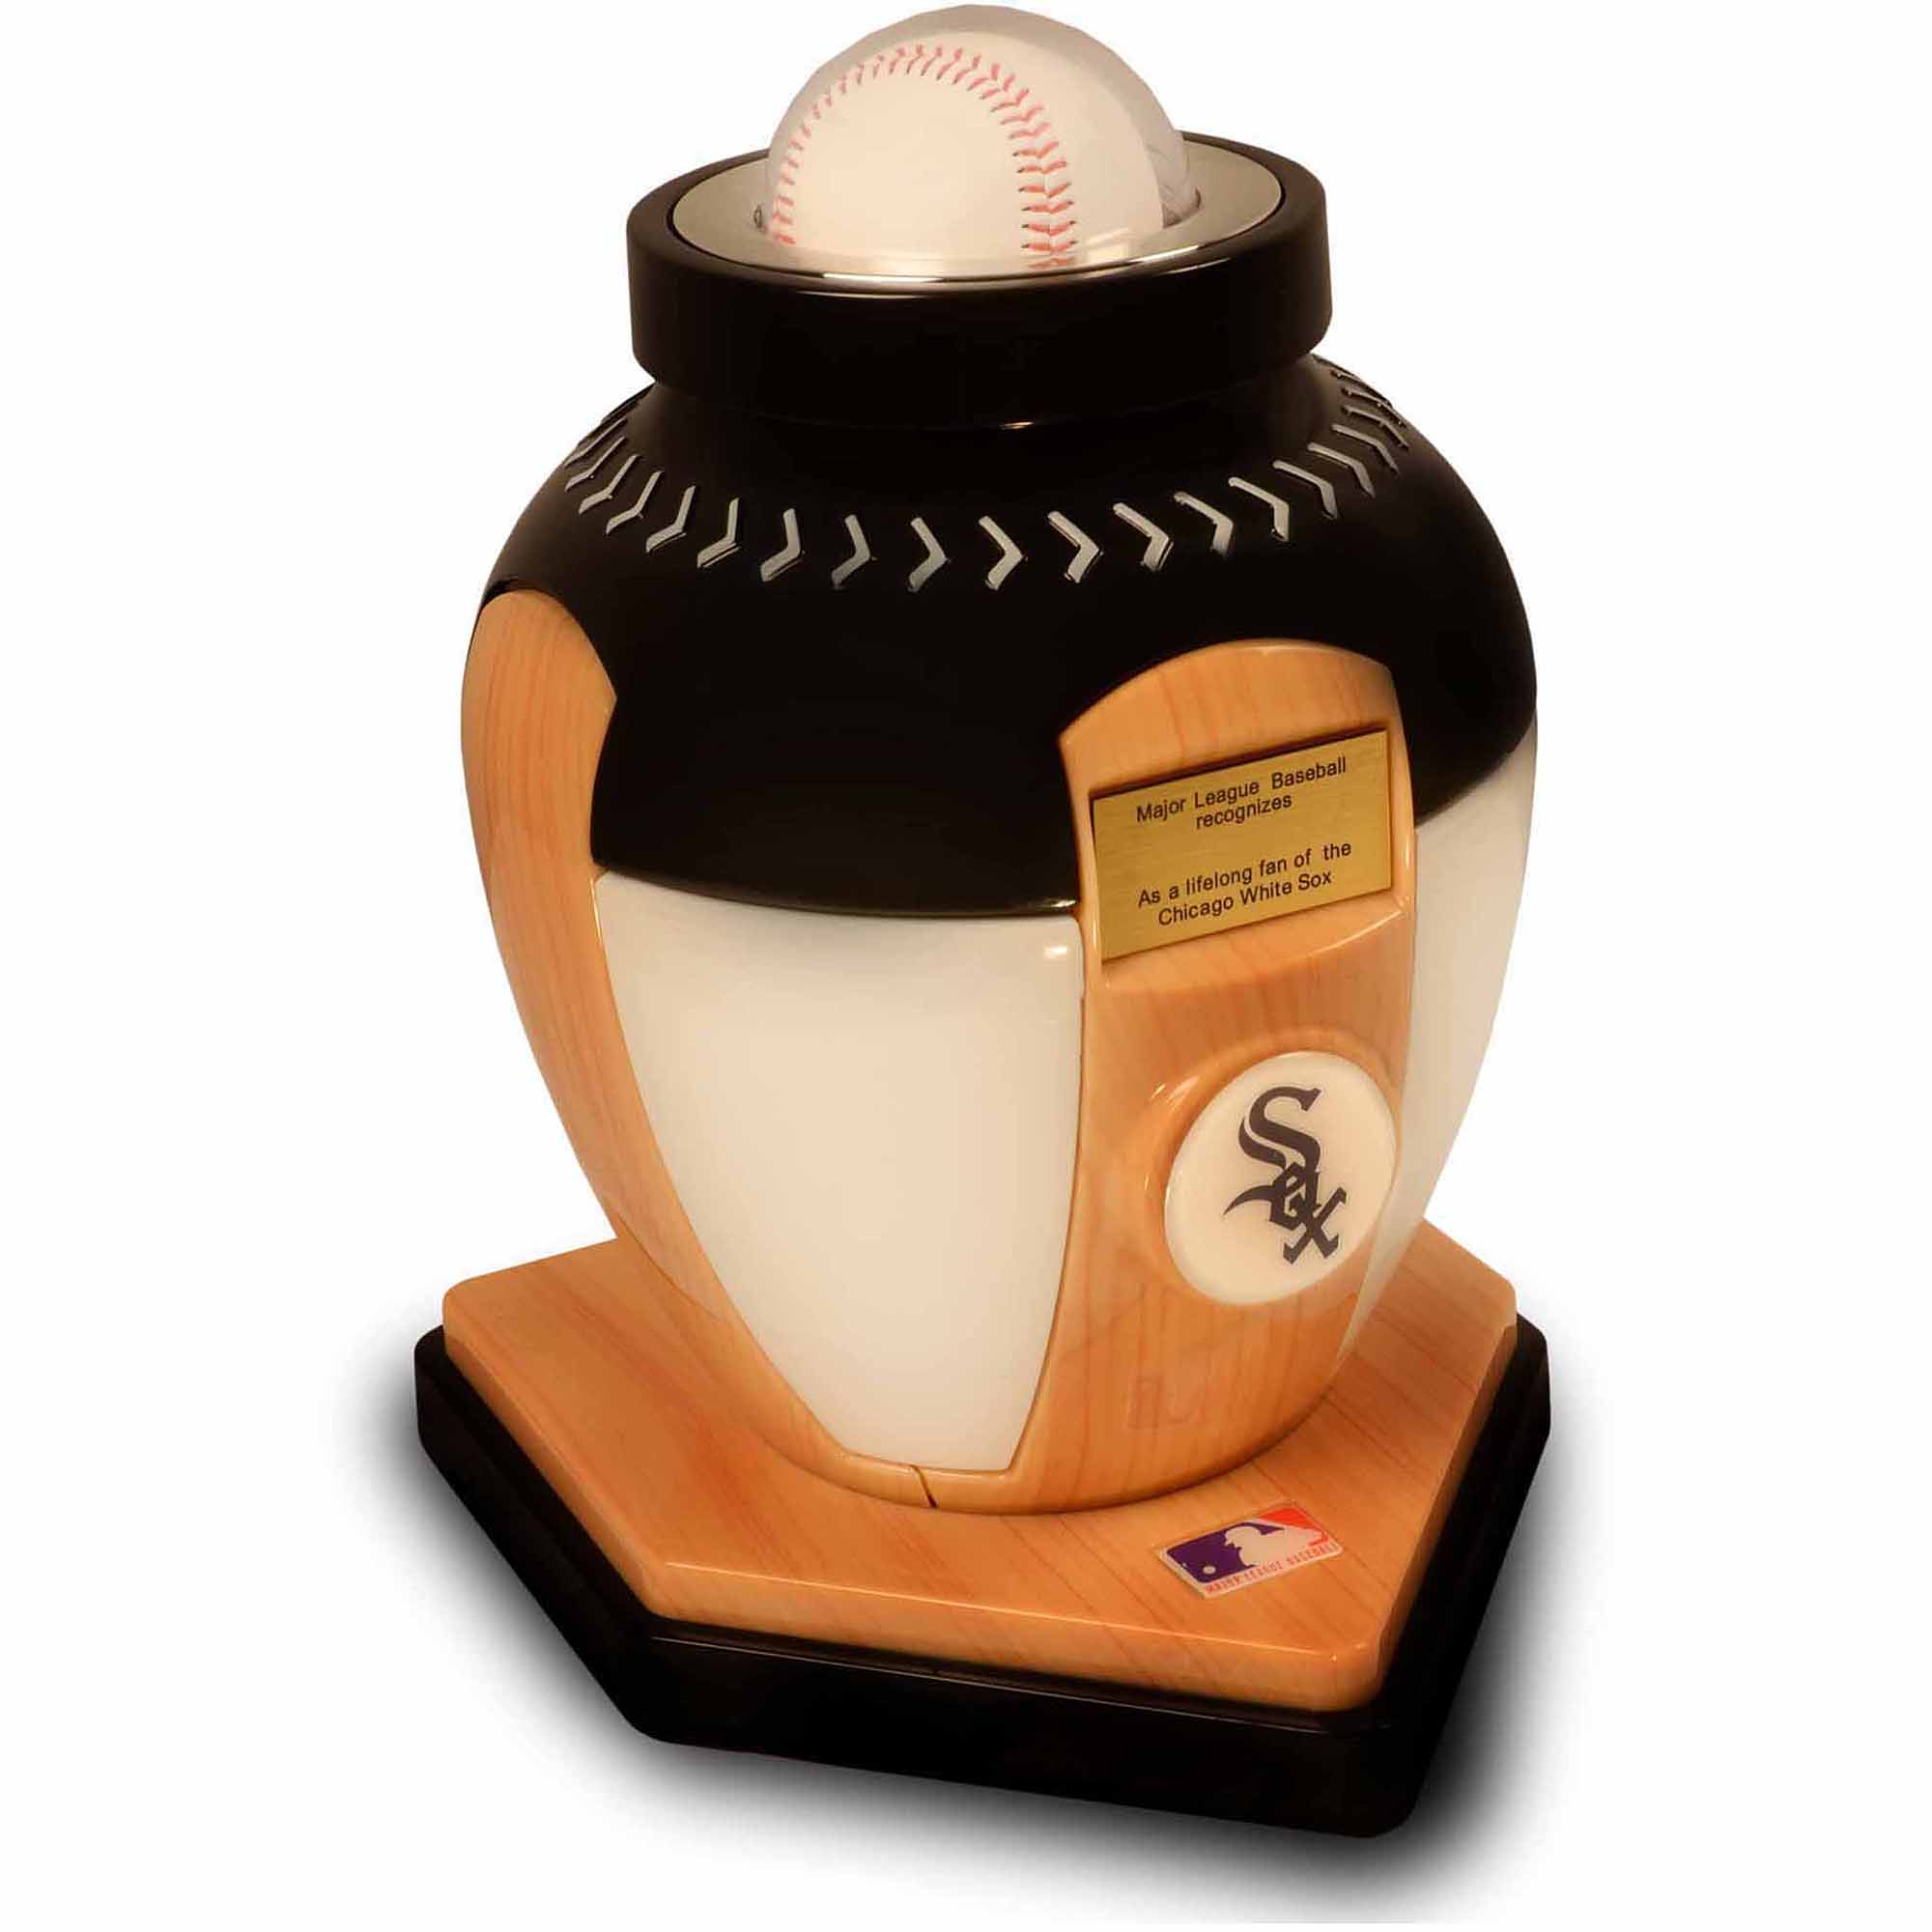 official major league baseball cremation urn for human ashes